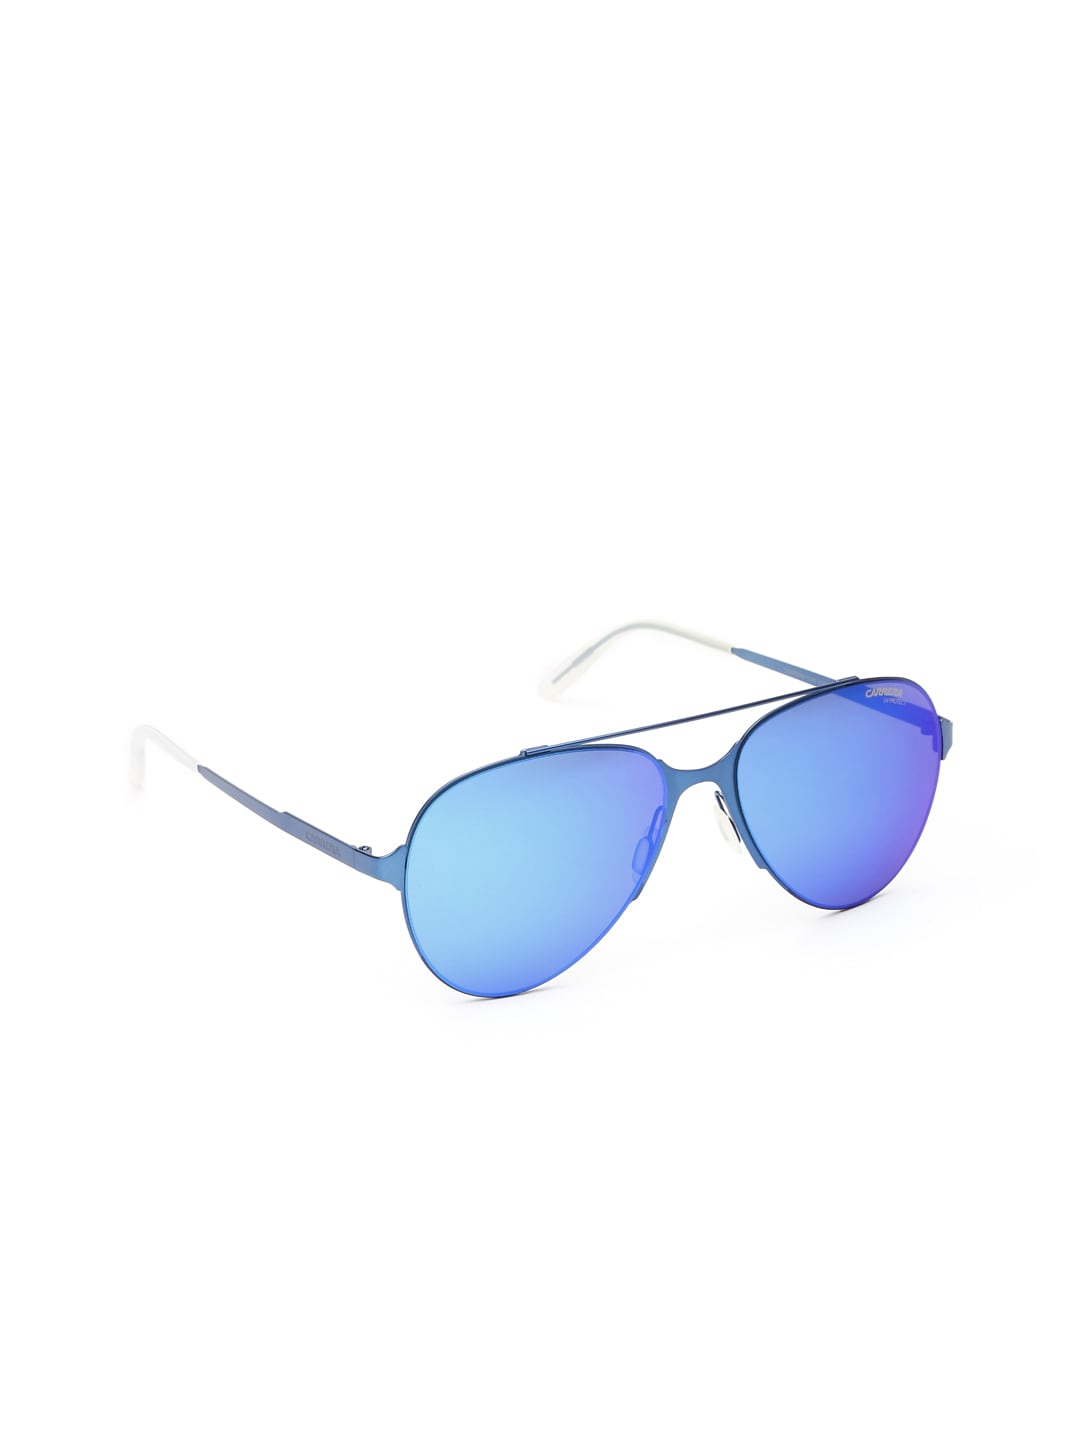 7612b66e1f Carrera Sunglasses -Buy Carrera Sunglass Online in India